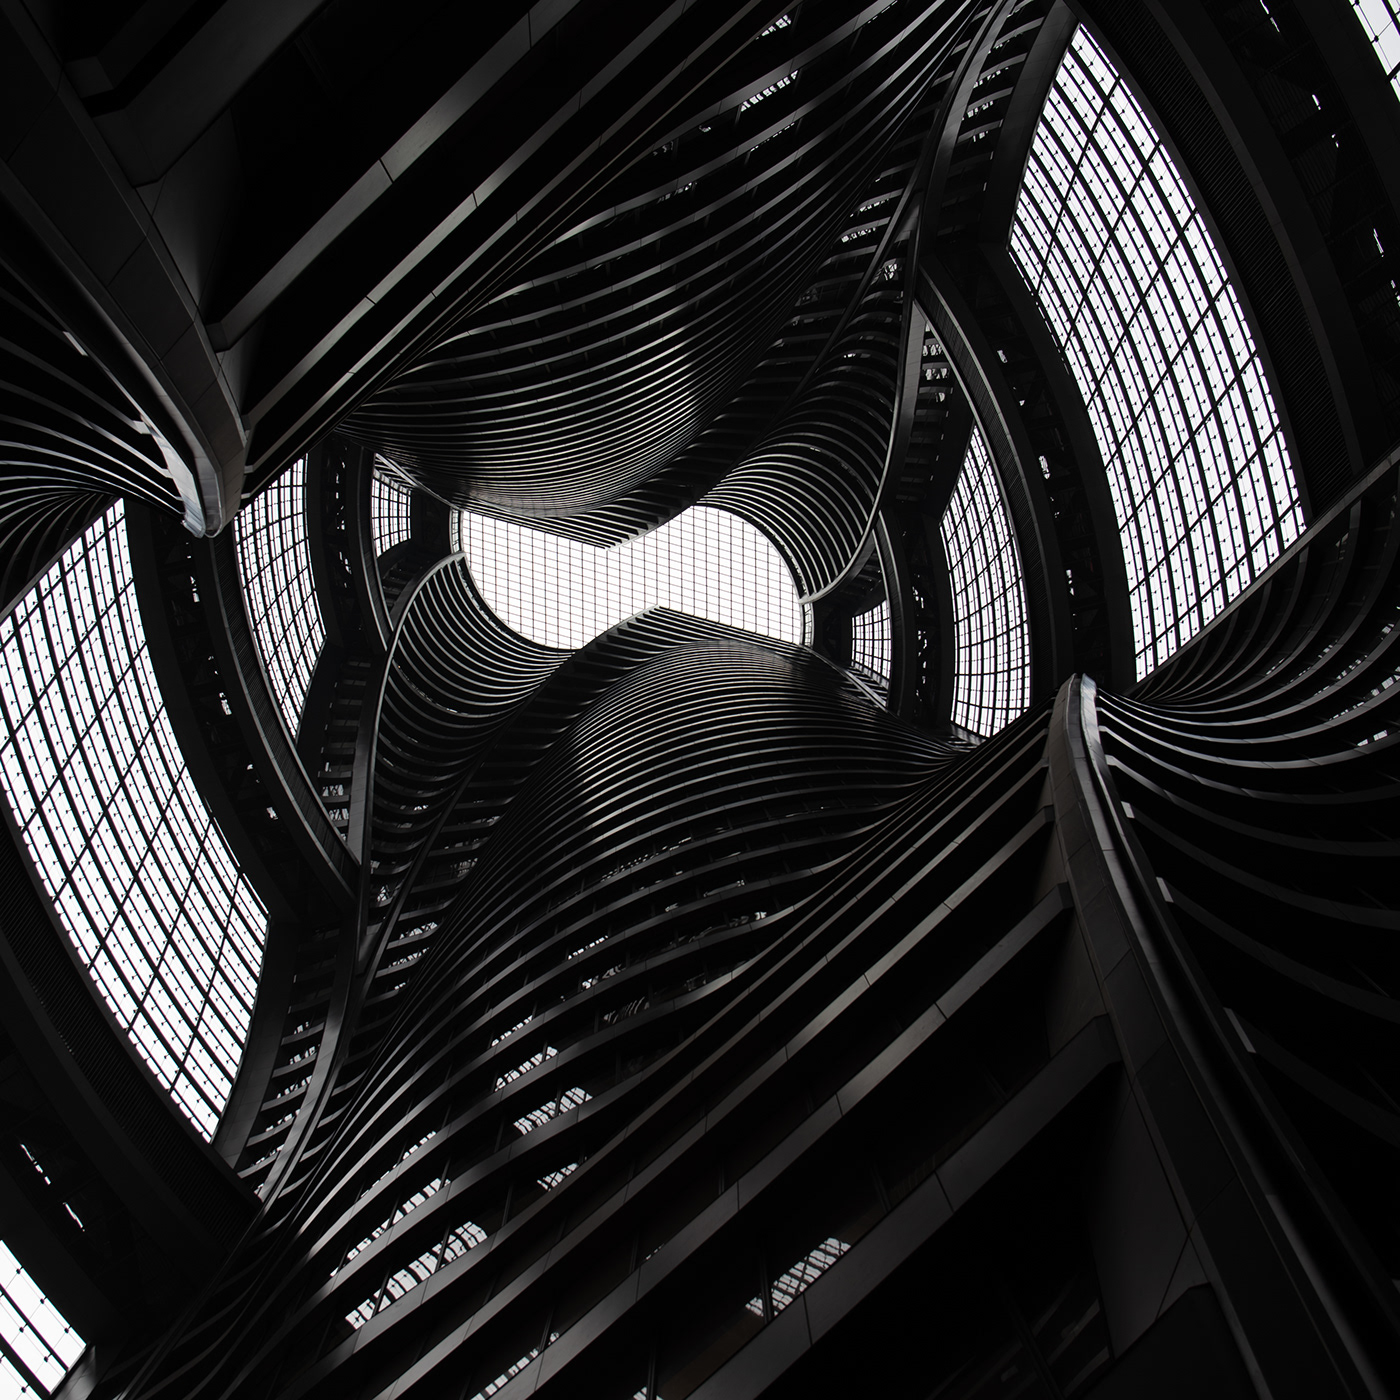 Image may contain: abstract, black and white and skyscraper